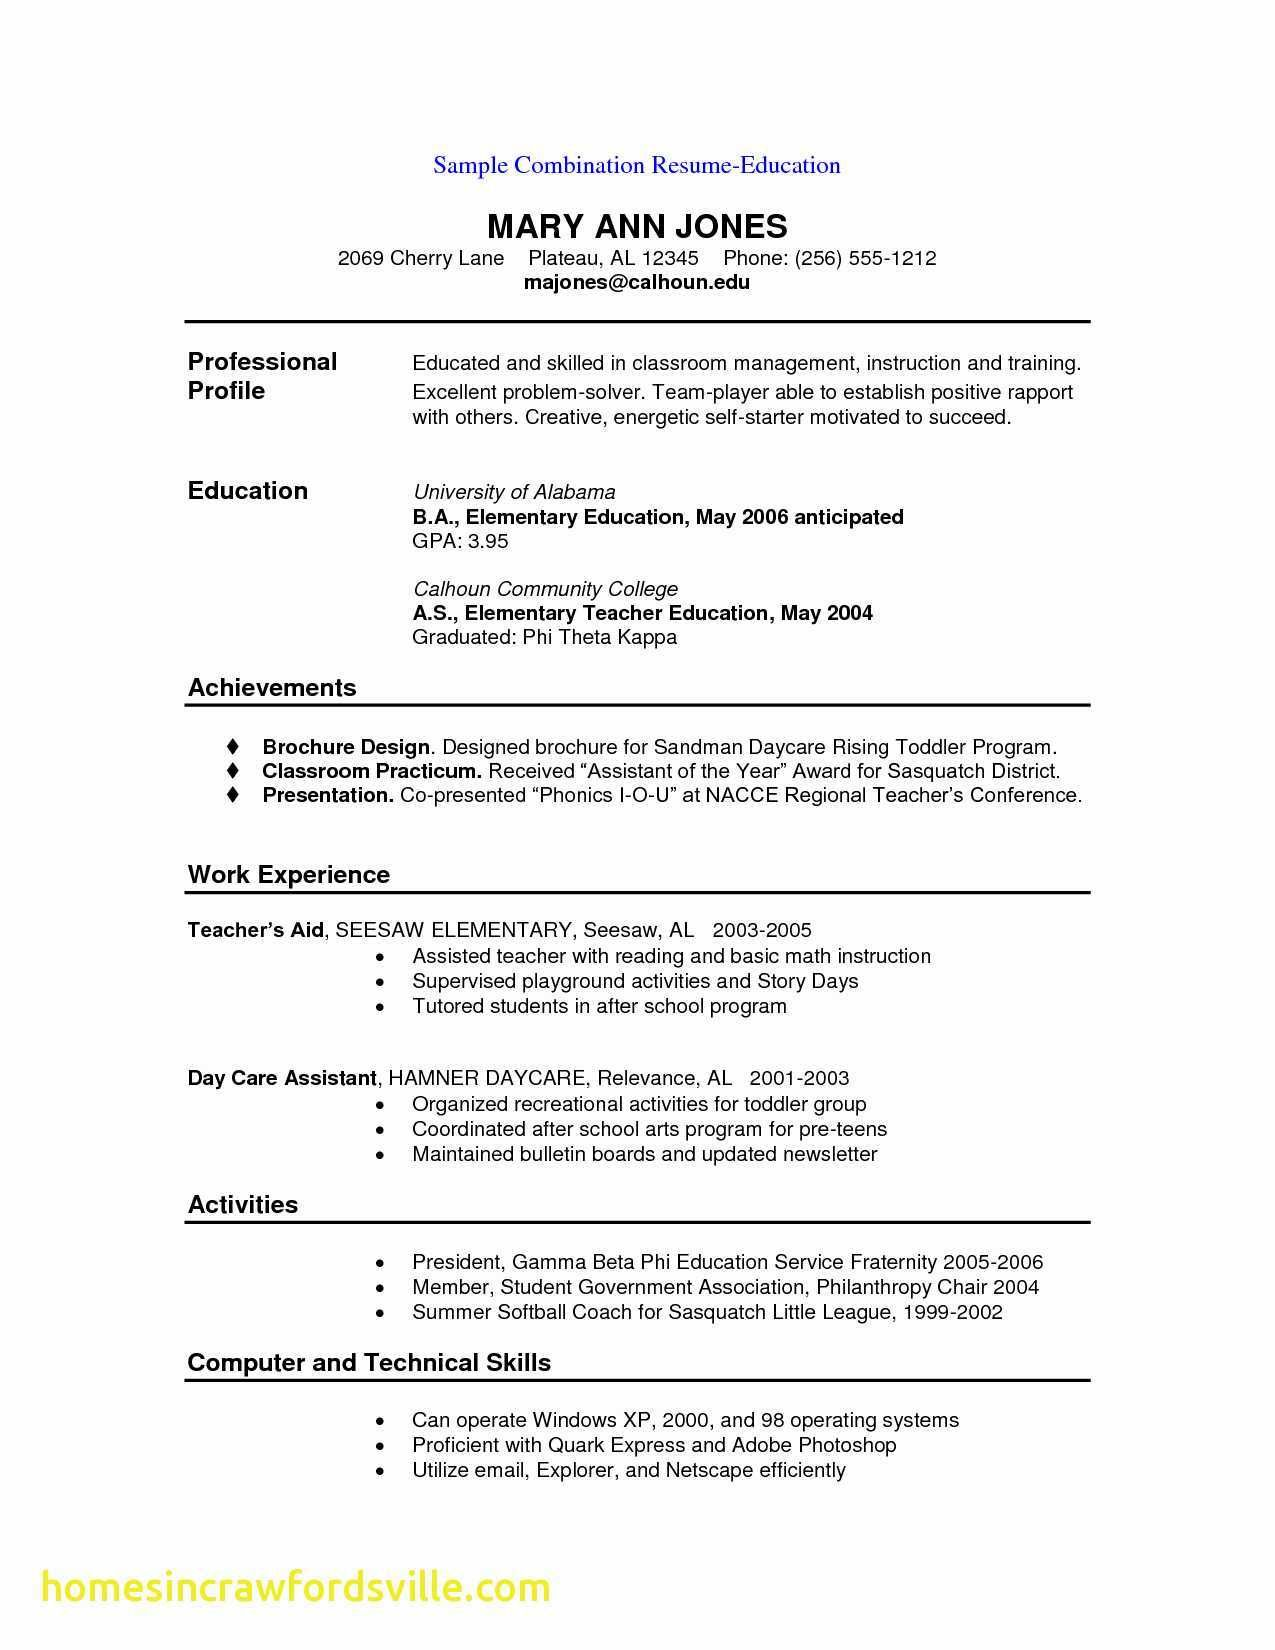 Management Summary Template Fair Pinmas Sant On Resume Template  Pinterest  Definitions Resume .